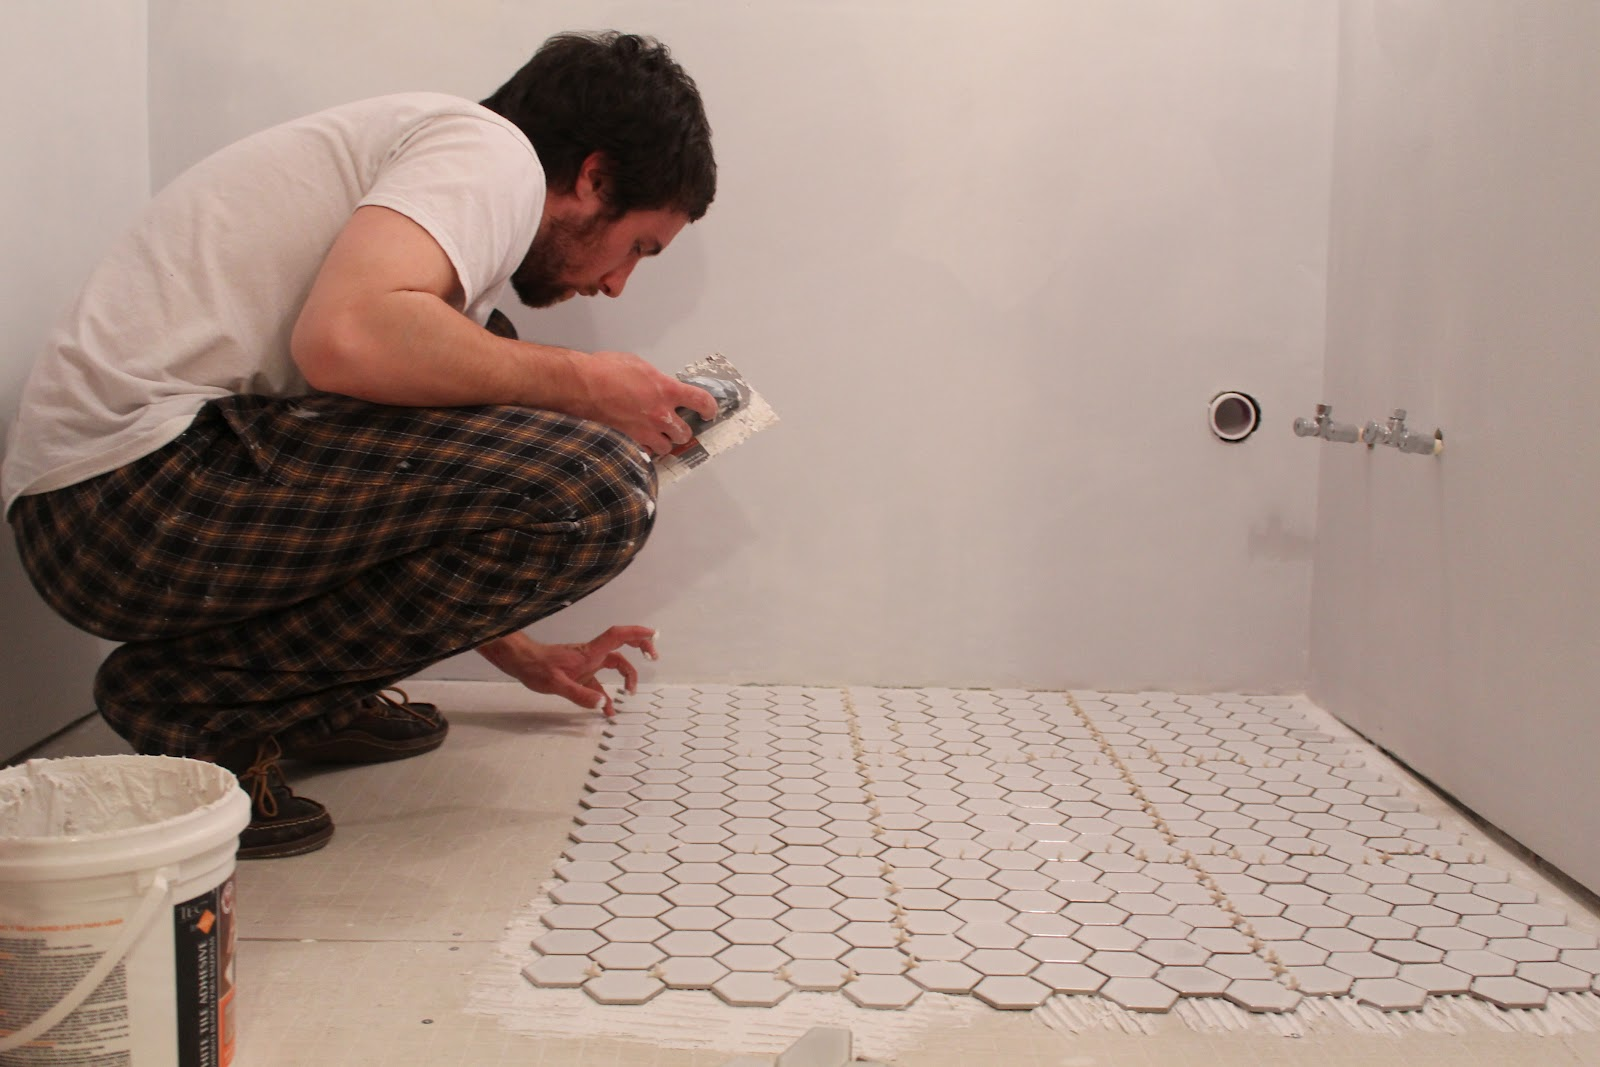 Look At This Fellow Tiling His Bathroom Floor. What A Shit Show. Look What  He Is Doing.